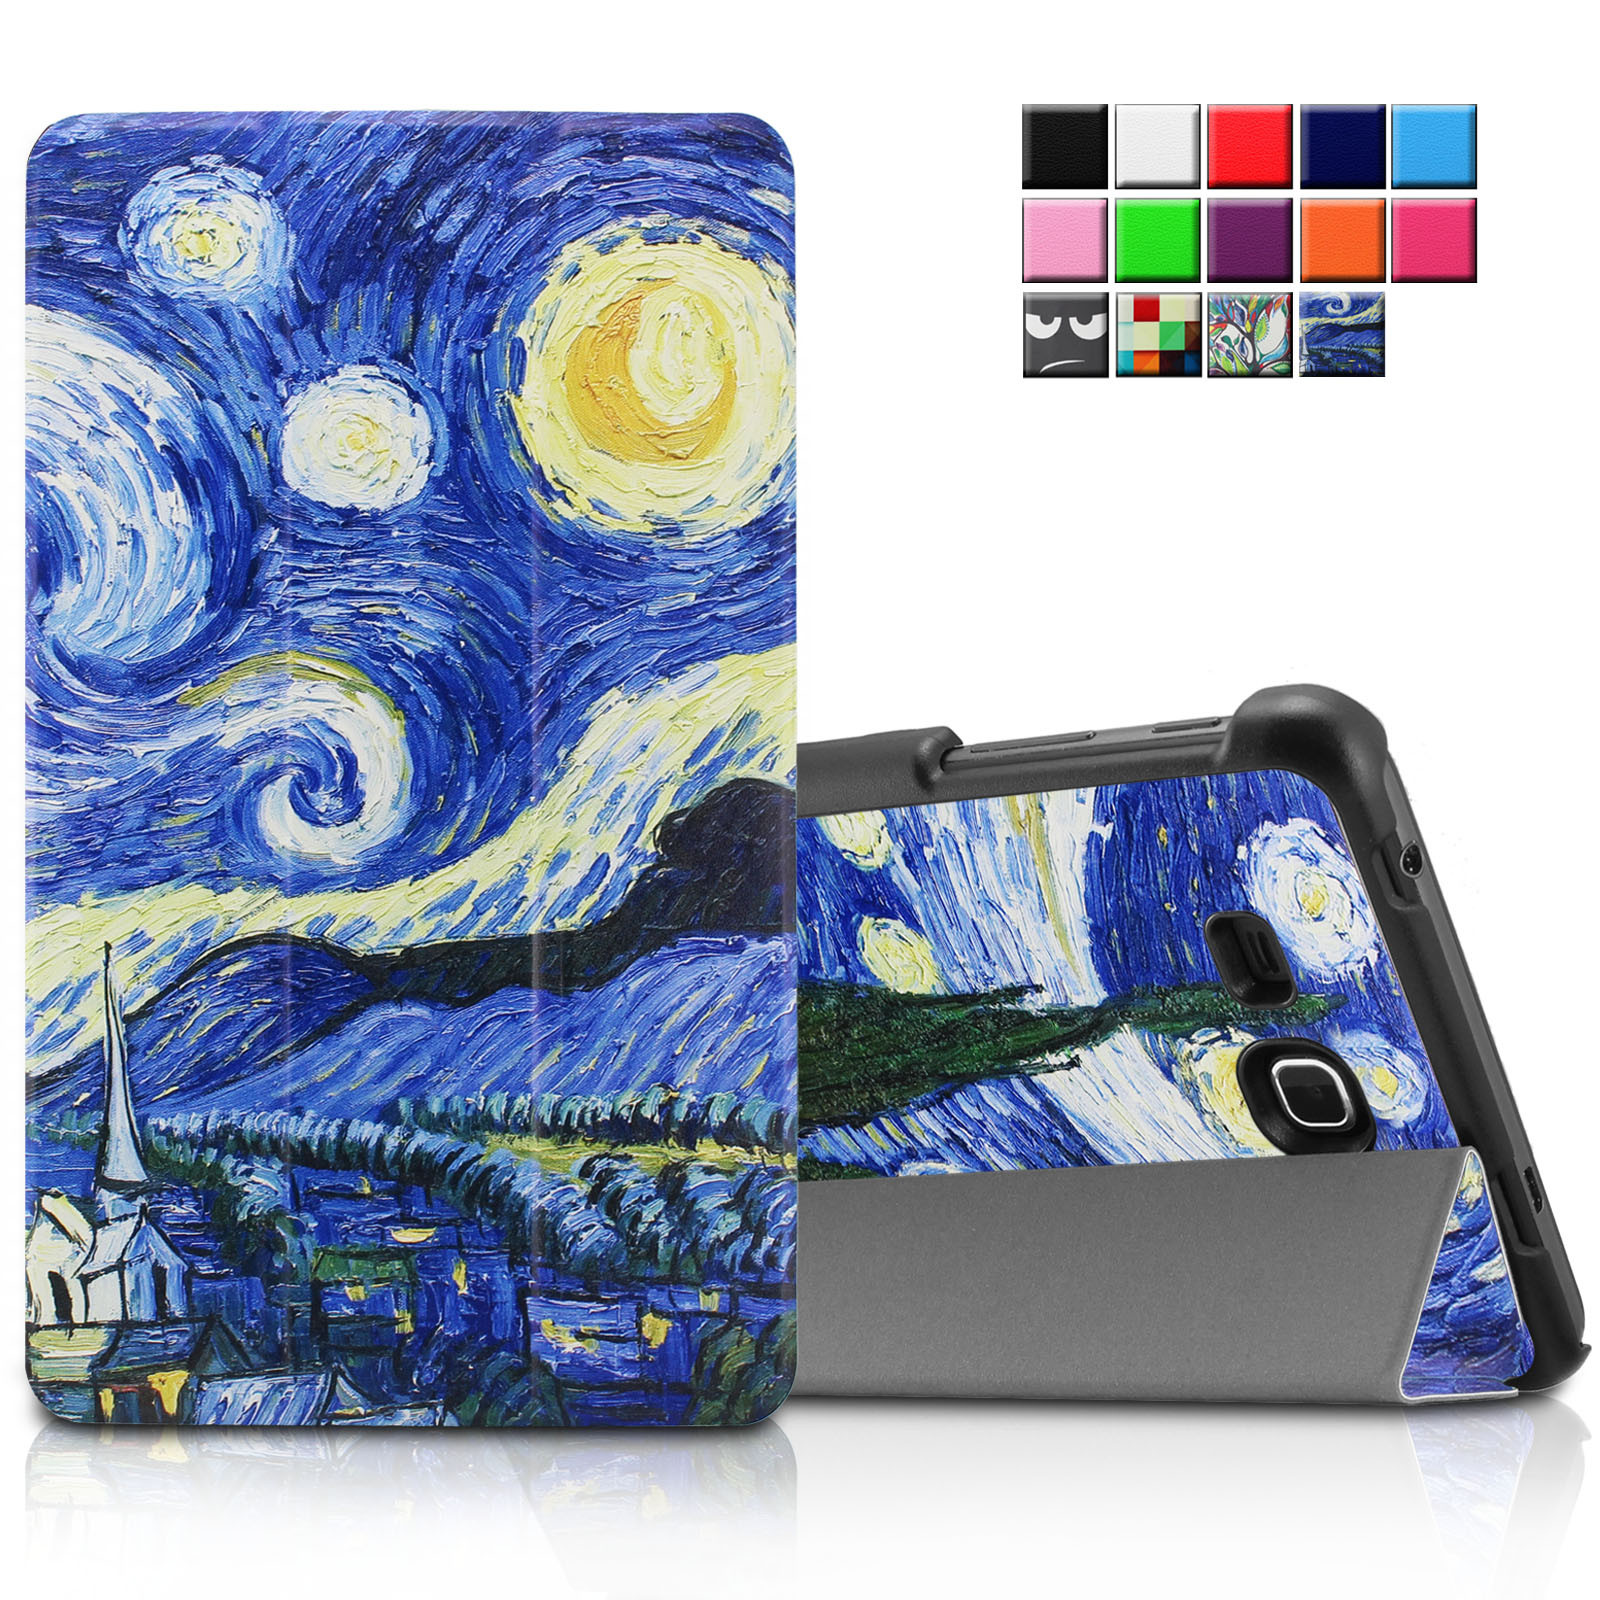 Galaxy Tab A 7.0 Case, Infiland Ultra Smart Cover For Samsung Galaxy Tab A 7.0 7-Inch Tablet, Starry Night